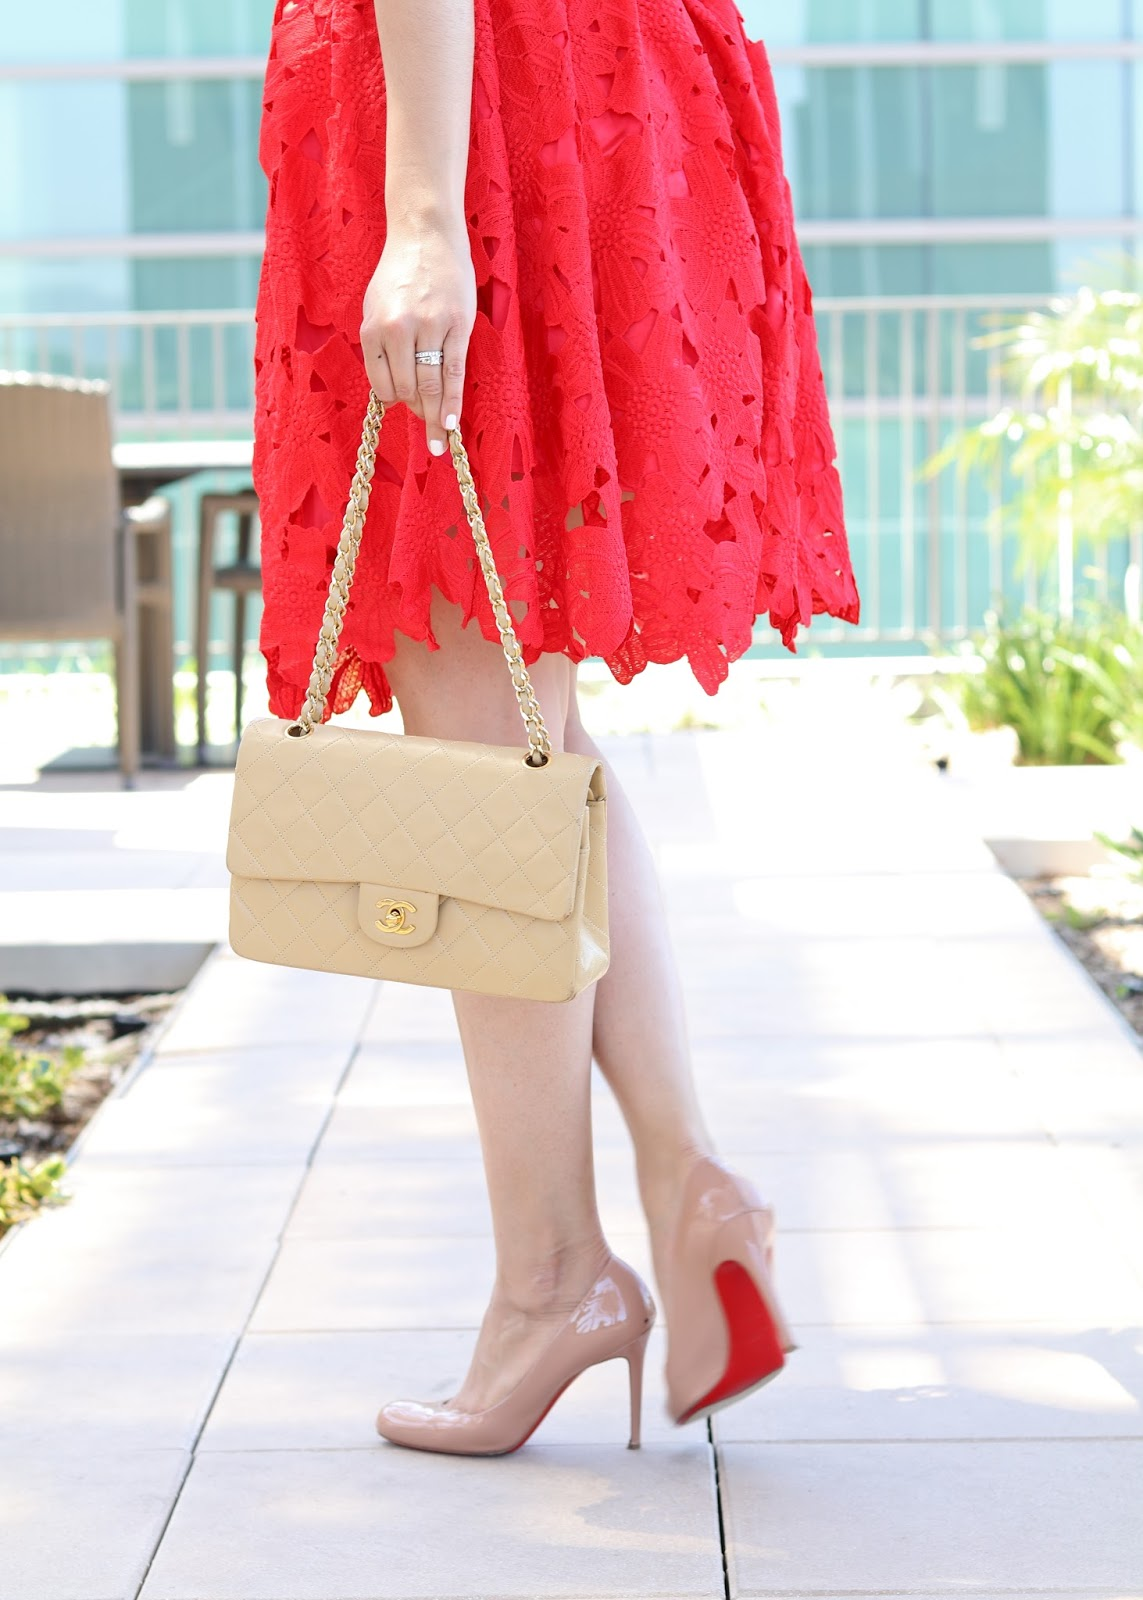 Red Dress with Nude Heels, How to wear nude shoes, louboutin outfit, beige chanel bag, designer vault chanel bags, designer vault blogger